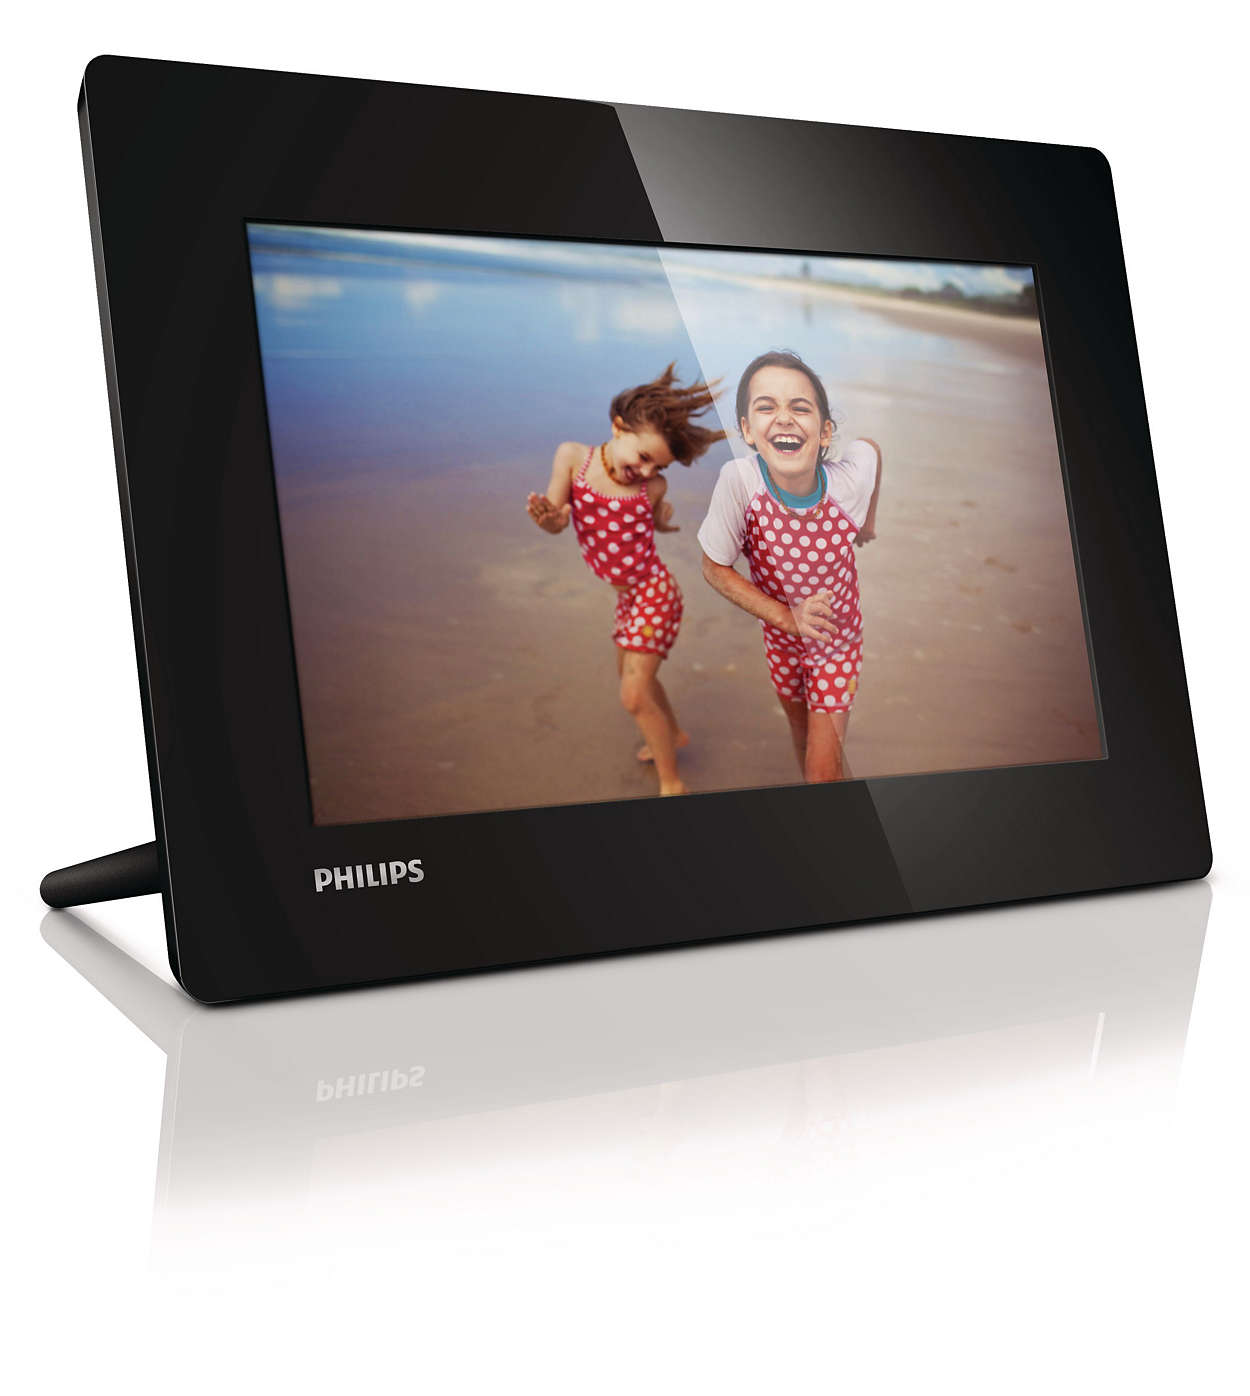 Digital Photoframe Spf461012 Philips